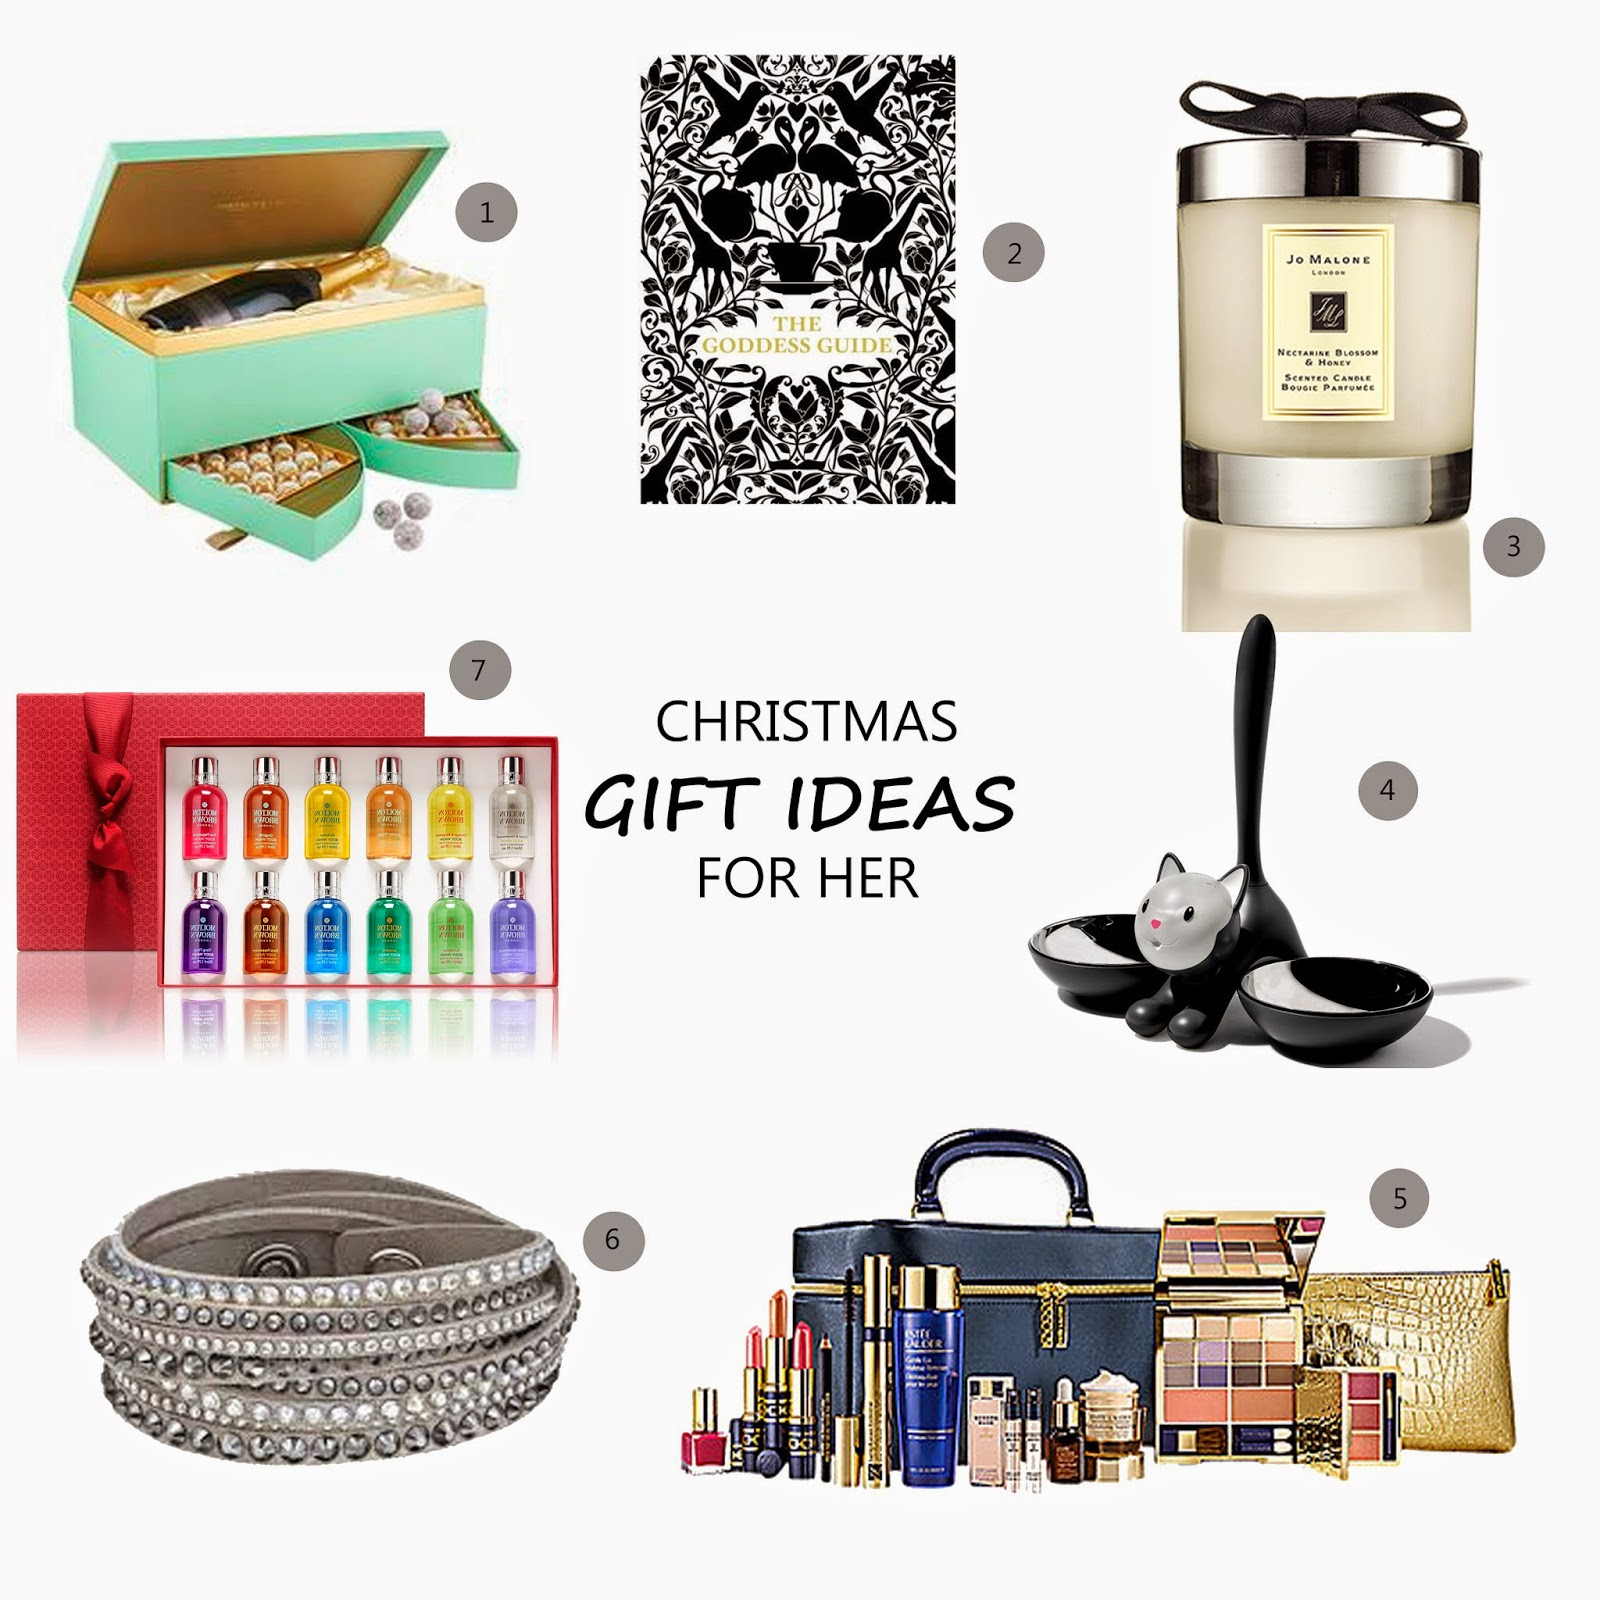 Best ideas about Gift Ideas For Her . Save or Pin 7 Christmas Gift Ideas for Her Loved By Laura Now.